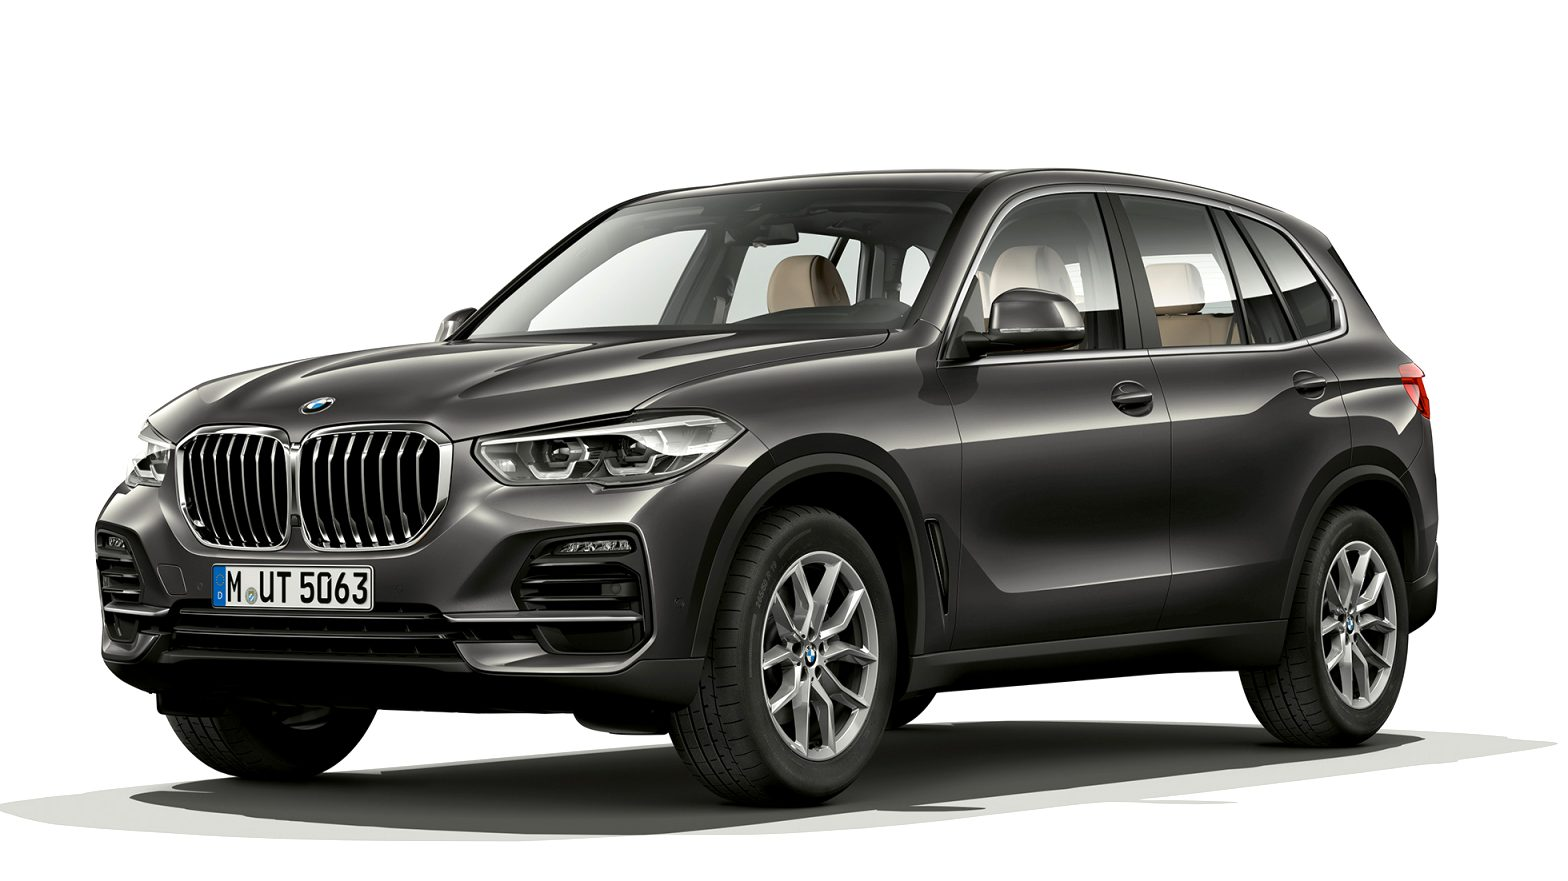 2021 BMW jeep Price and Release date